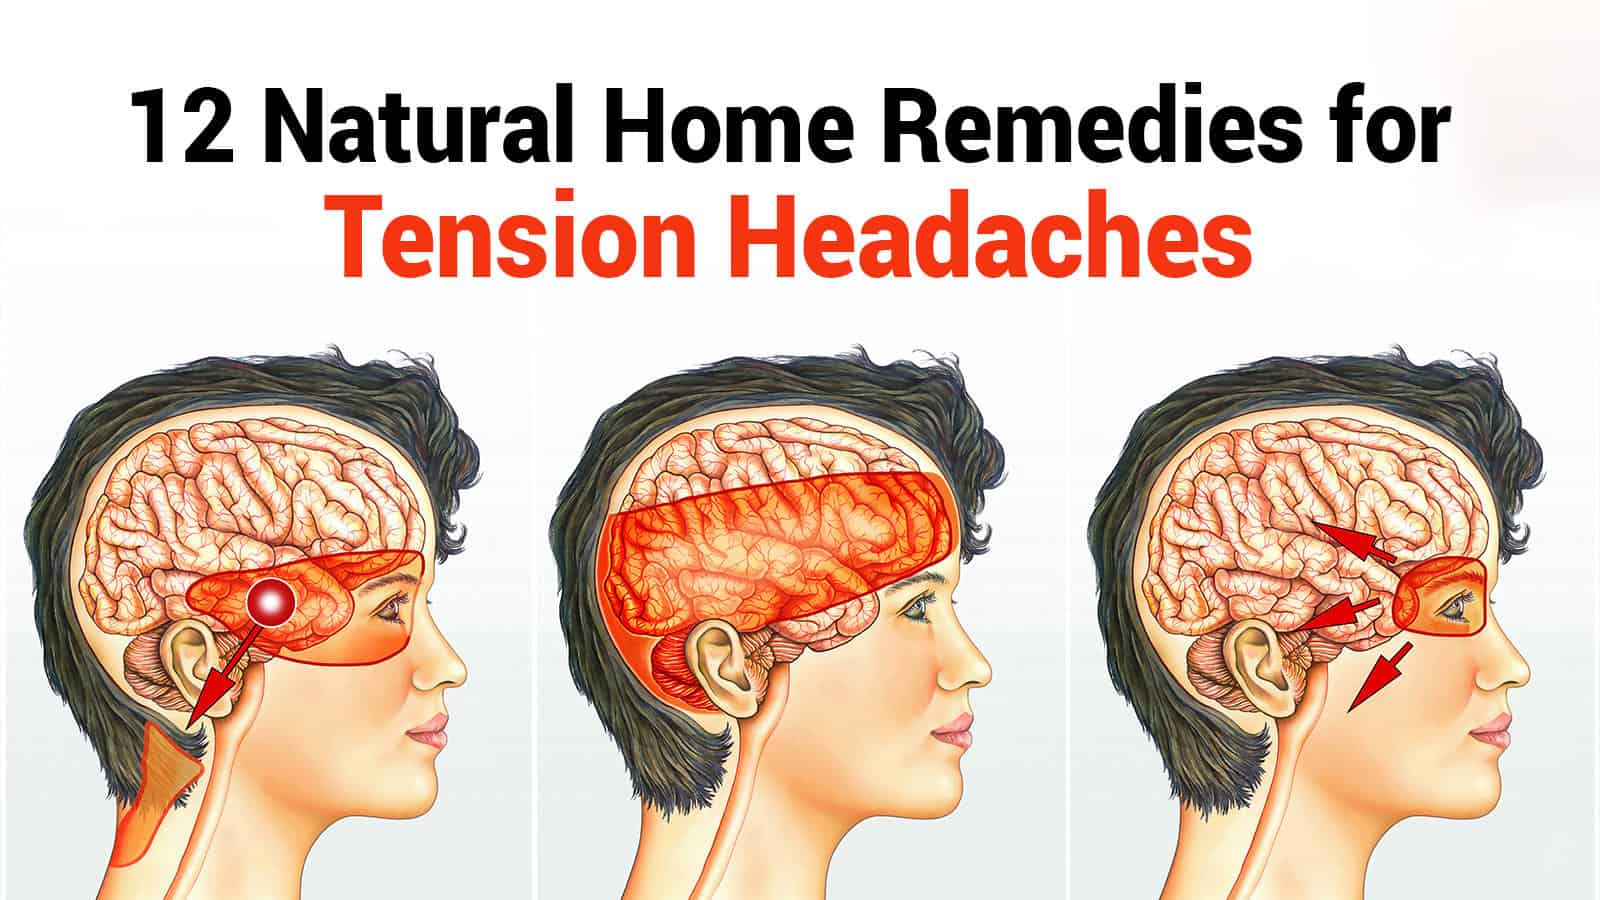 12 Natural Home Remedies for Tension Headaches   5 Minute Read